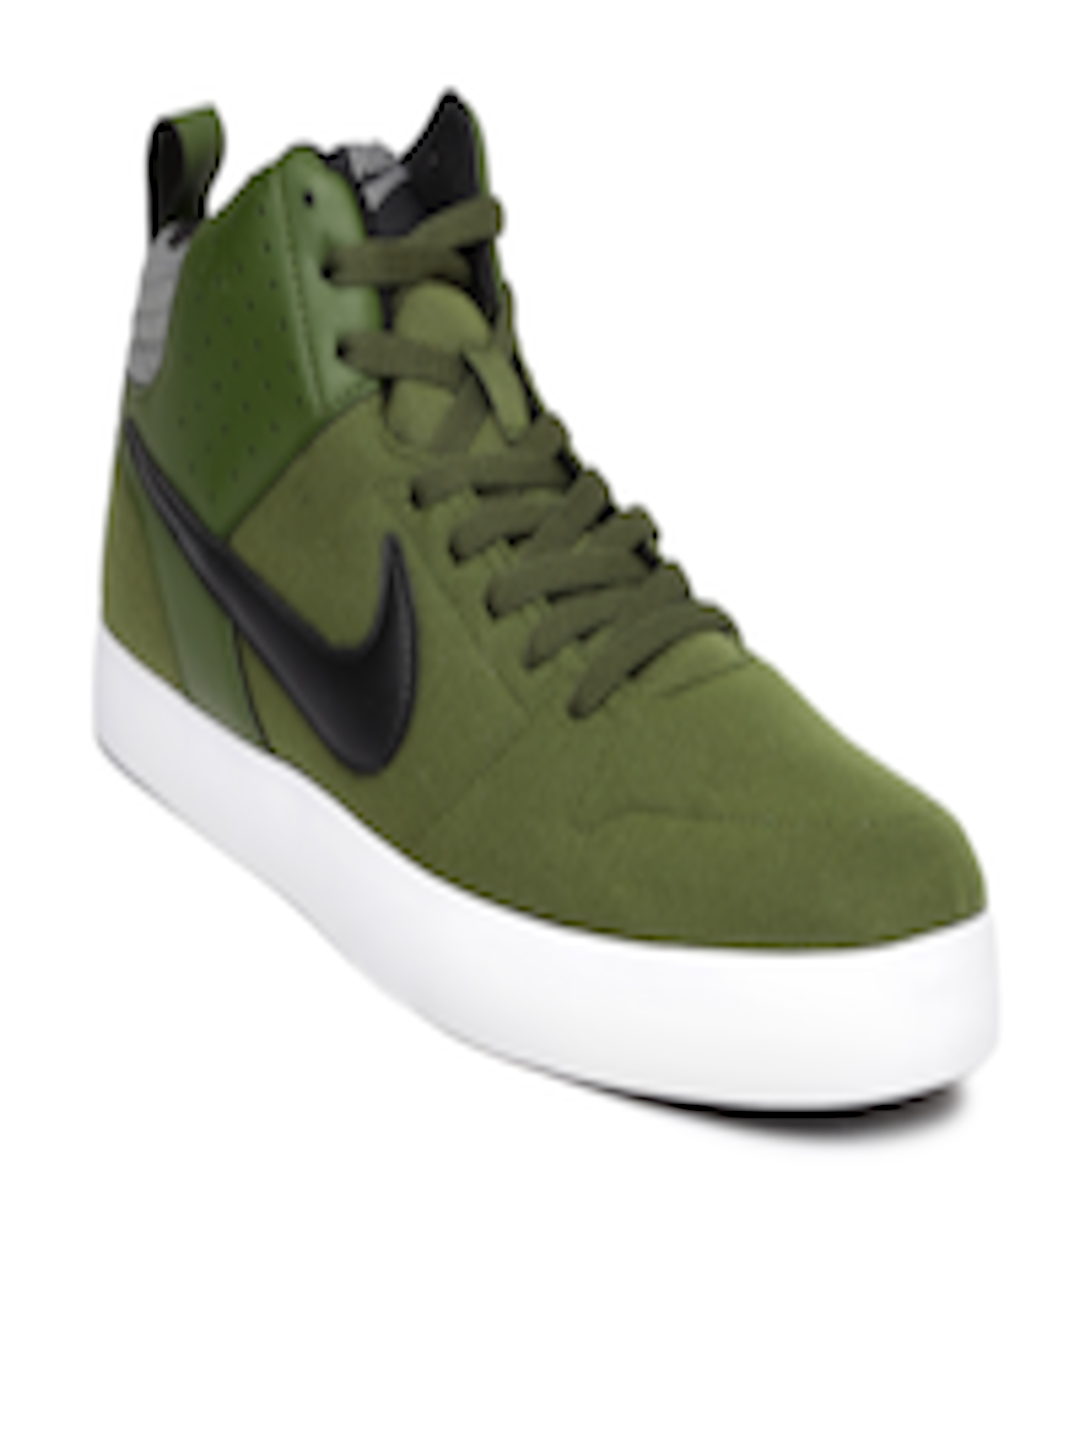 025bbfc36532 Buy Nike Men Olive Green Liteforce III Mid Top Sneakers - Casual Shoes for  Men 1756715